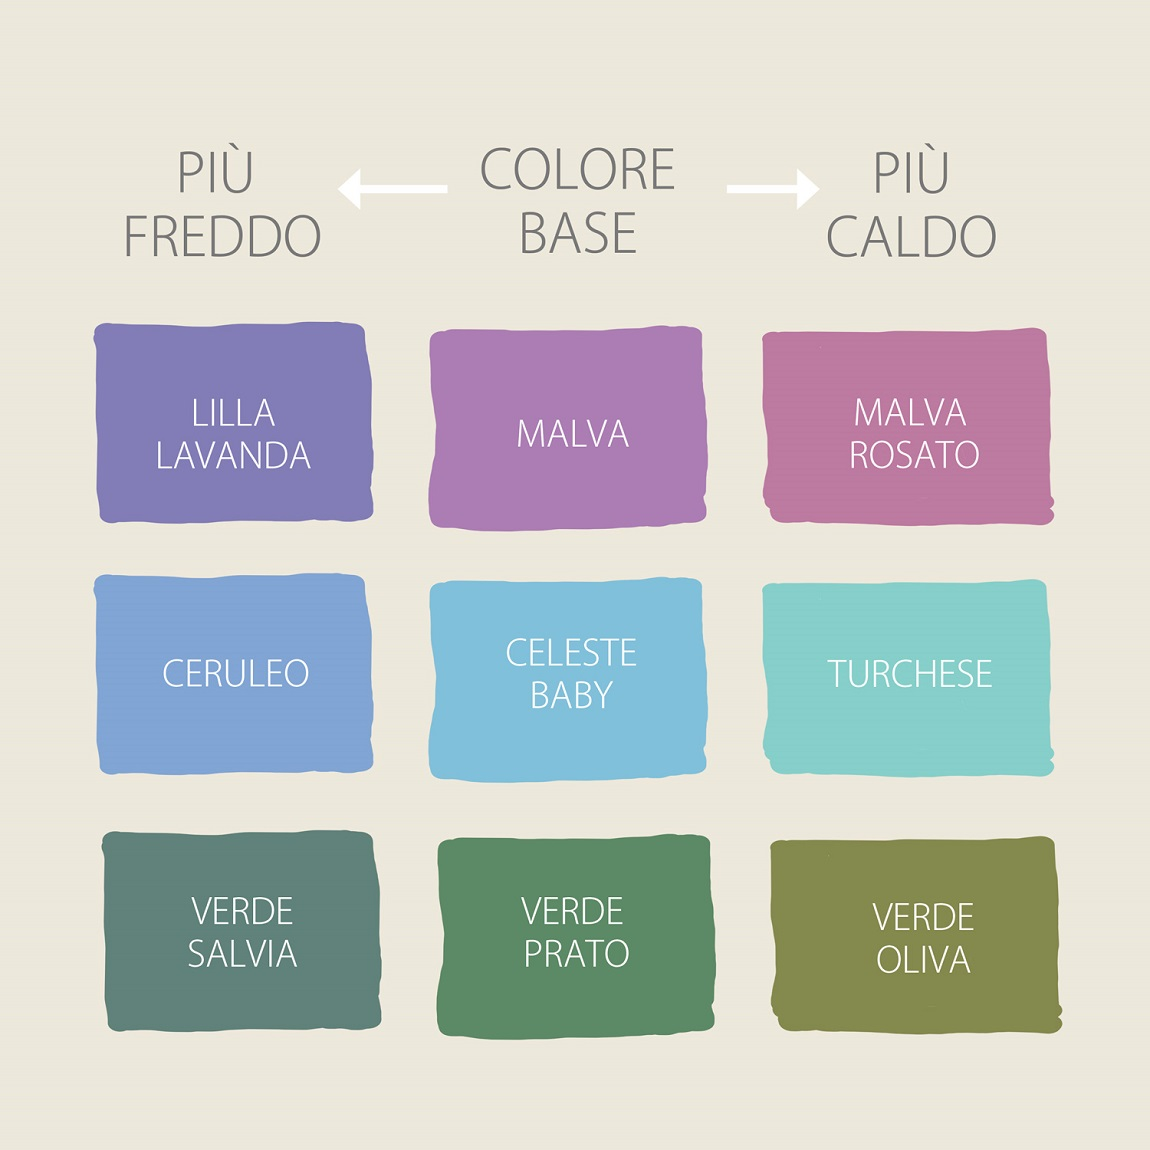 La differenza tra colori caldi e freddi in armocromia.